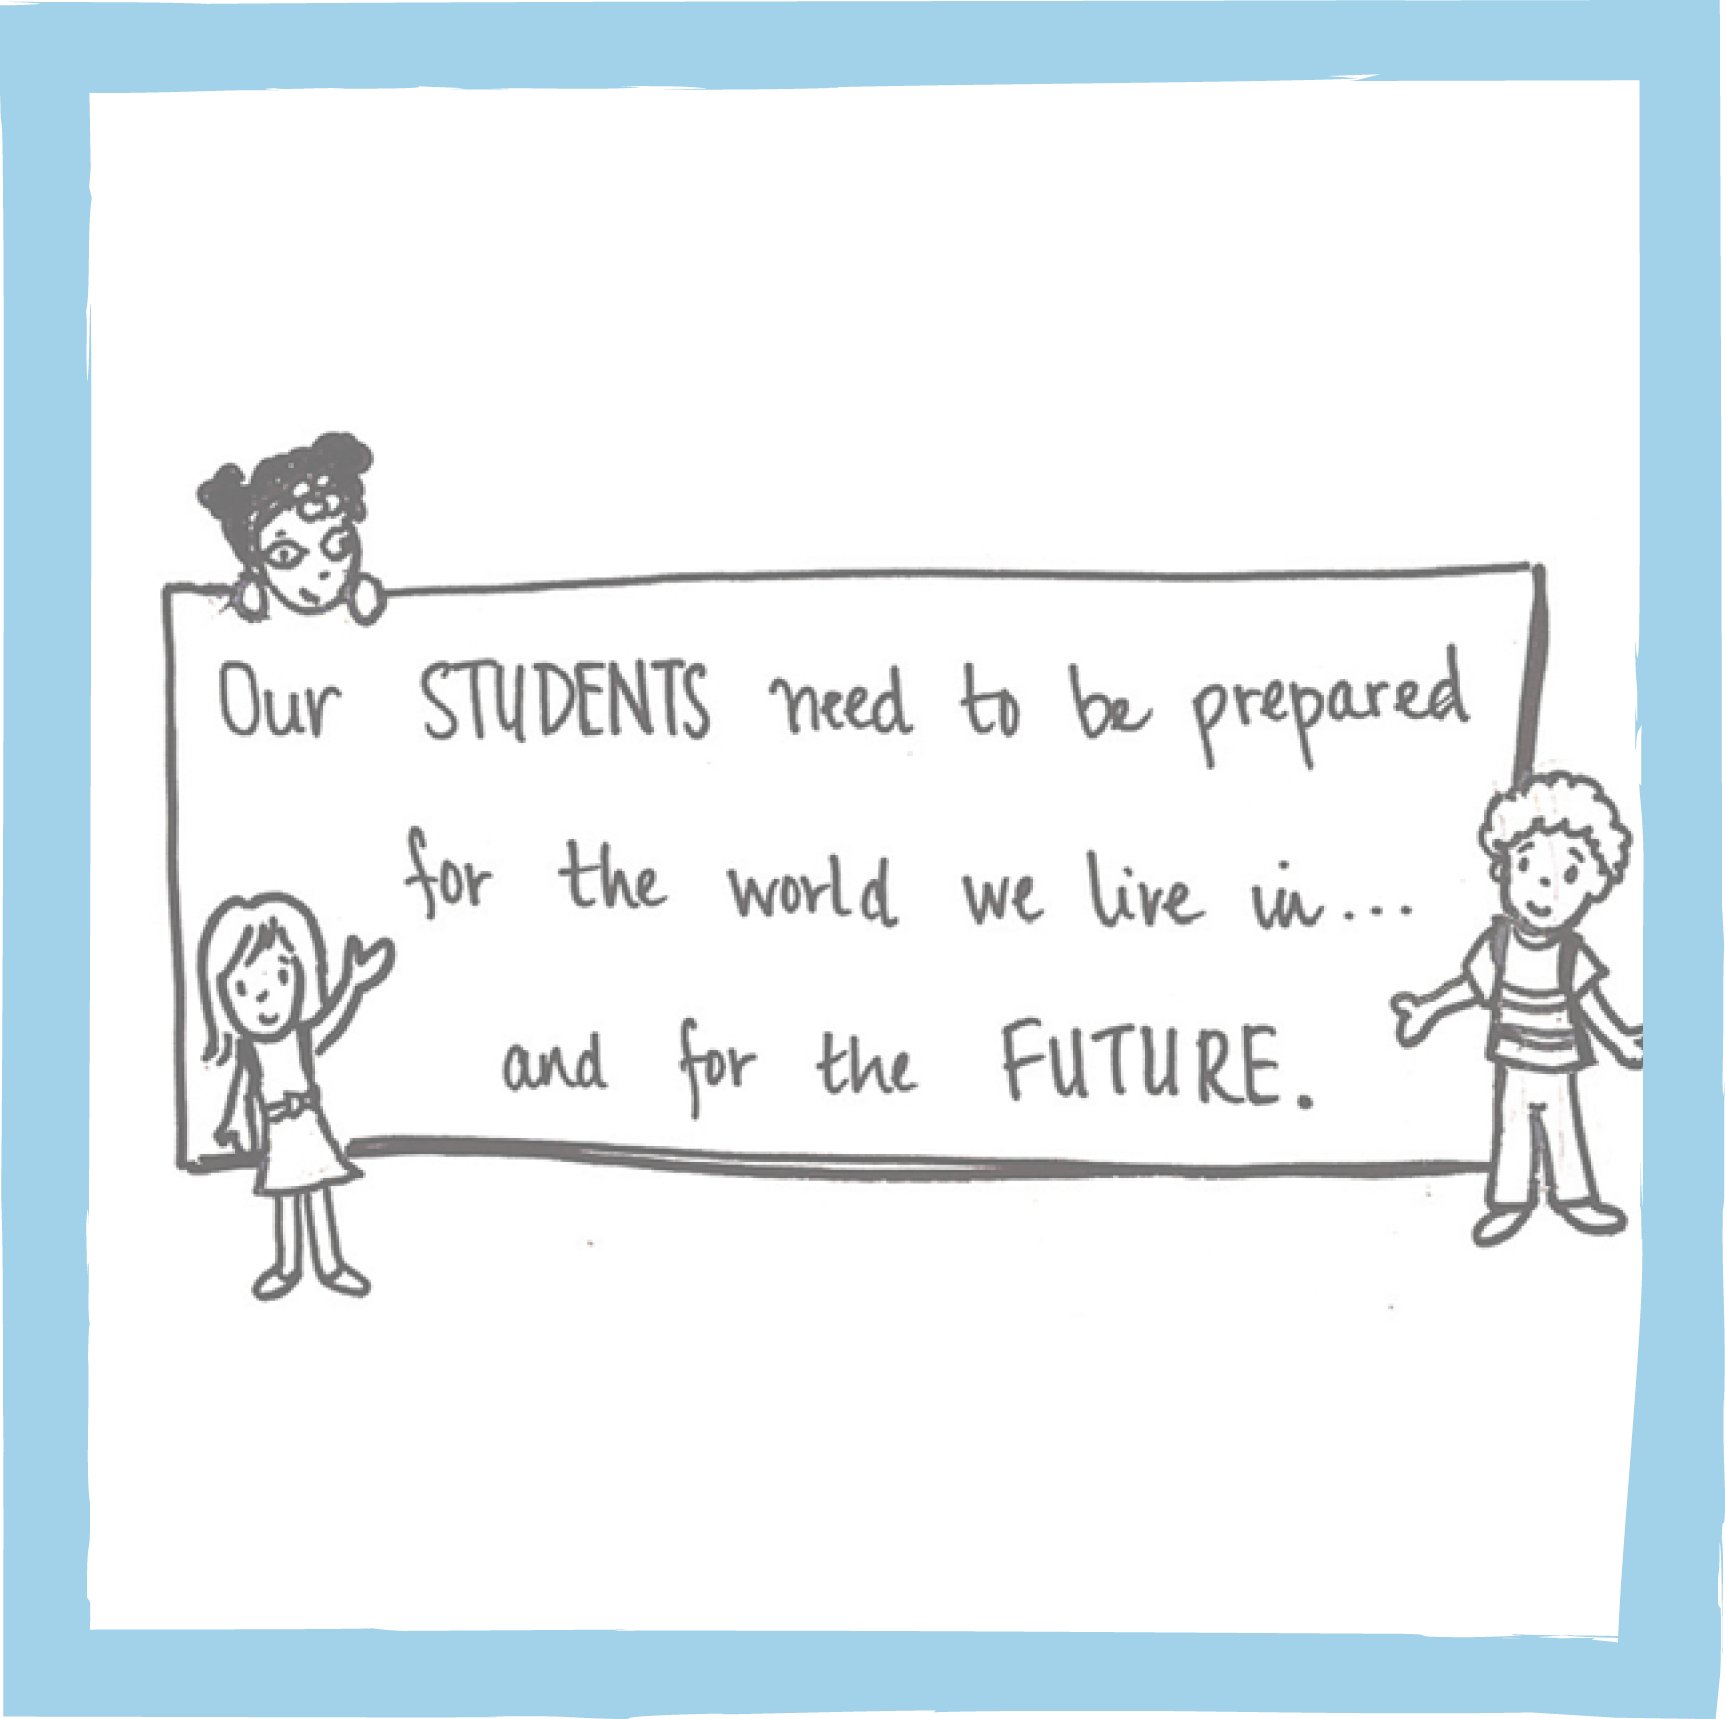 Our students need to be prepared for the world of work